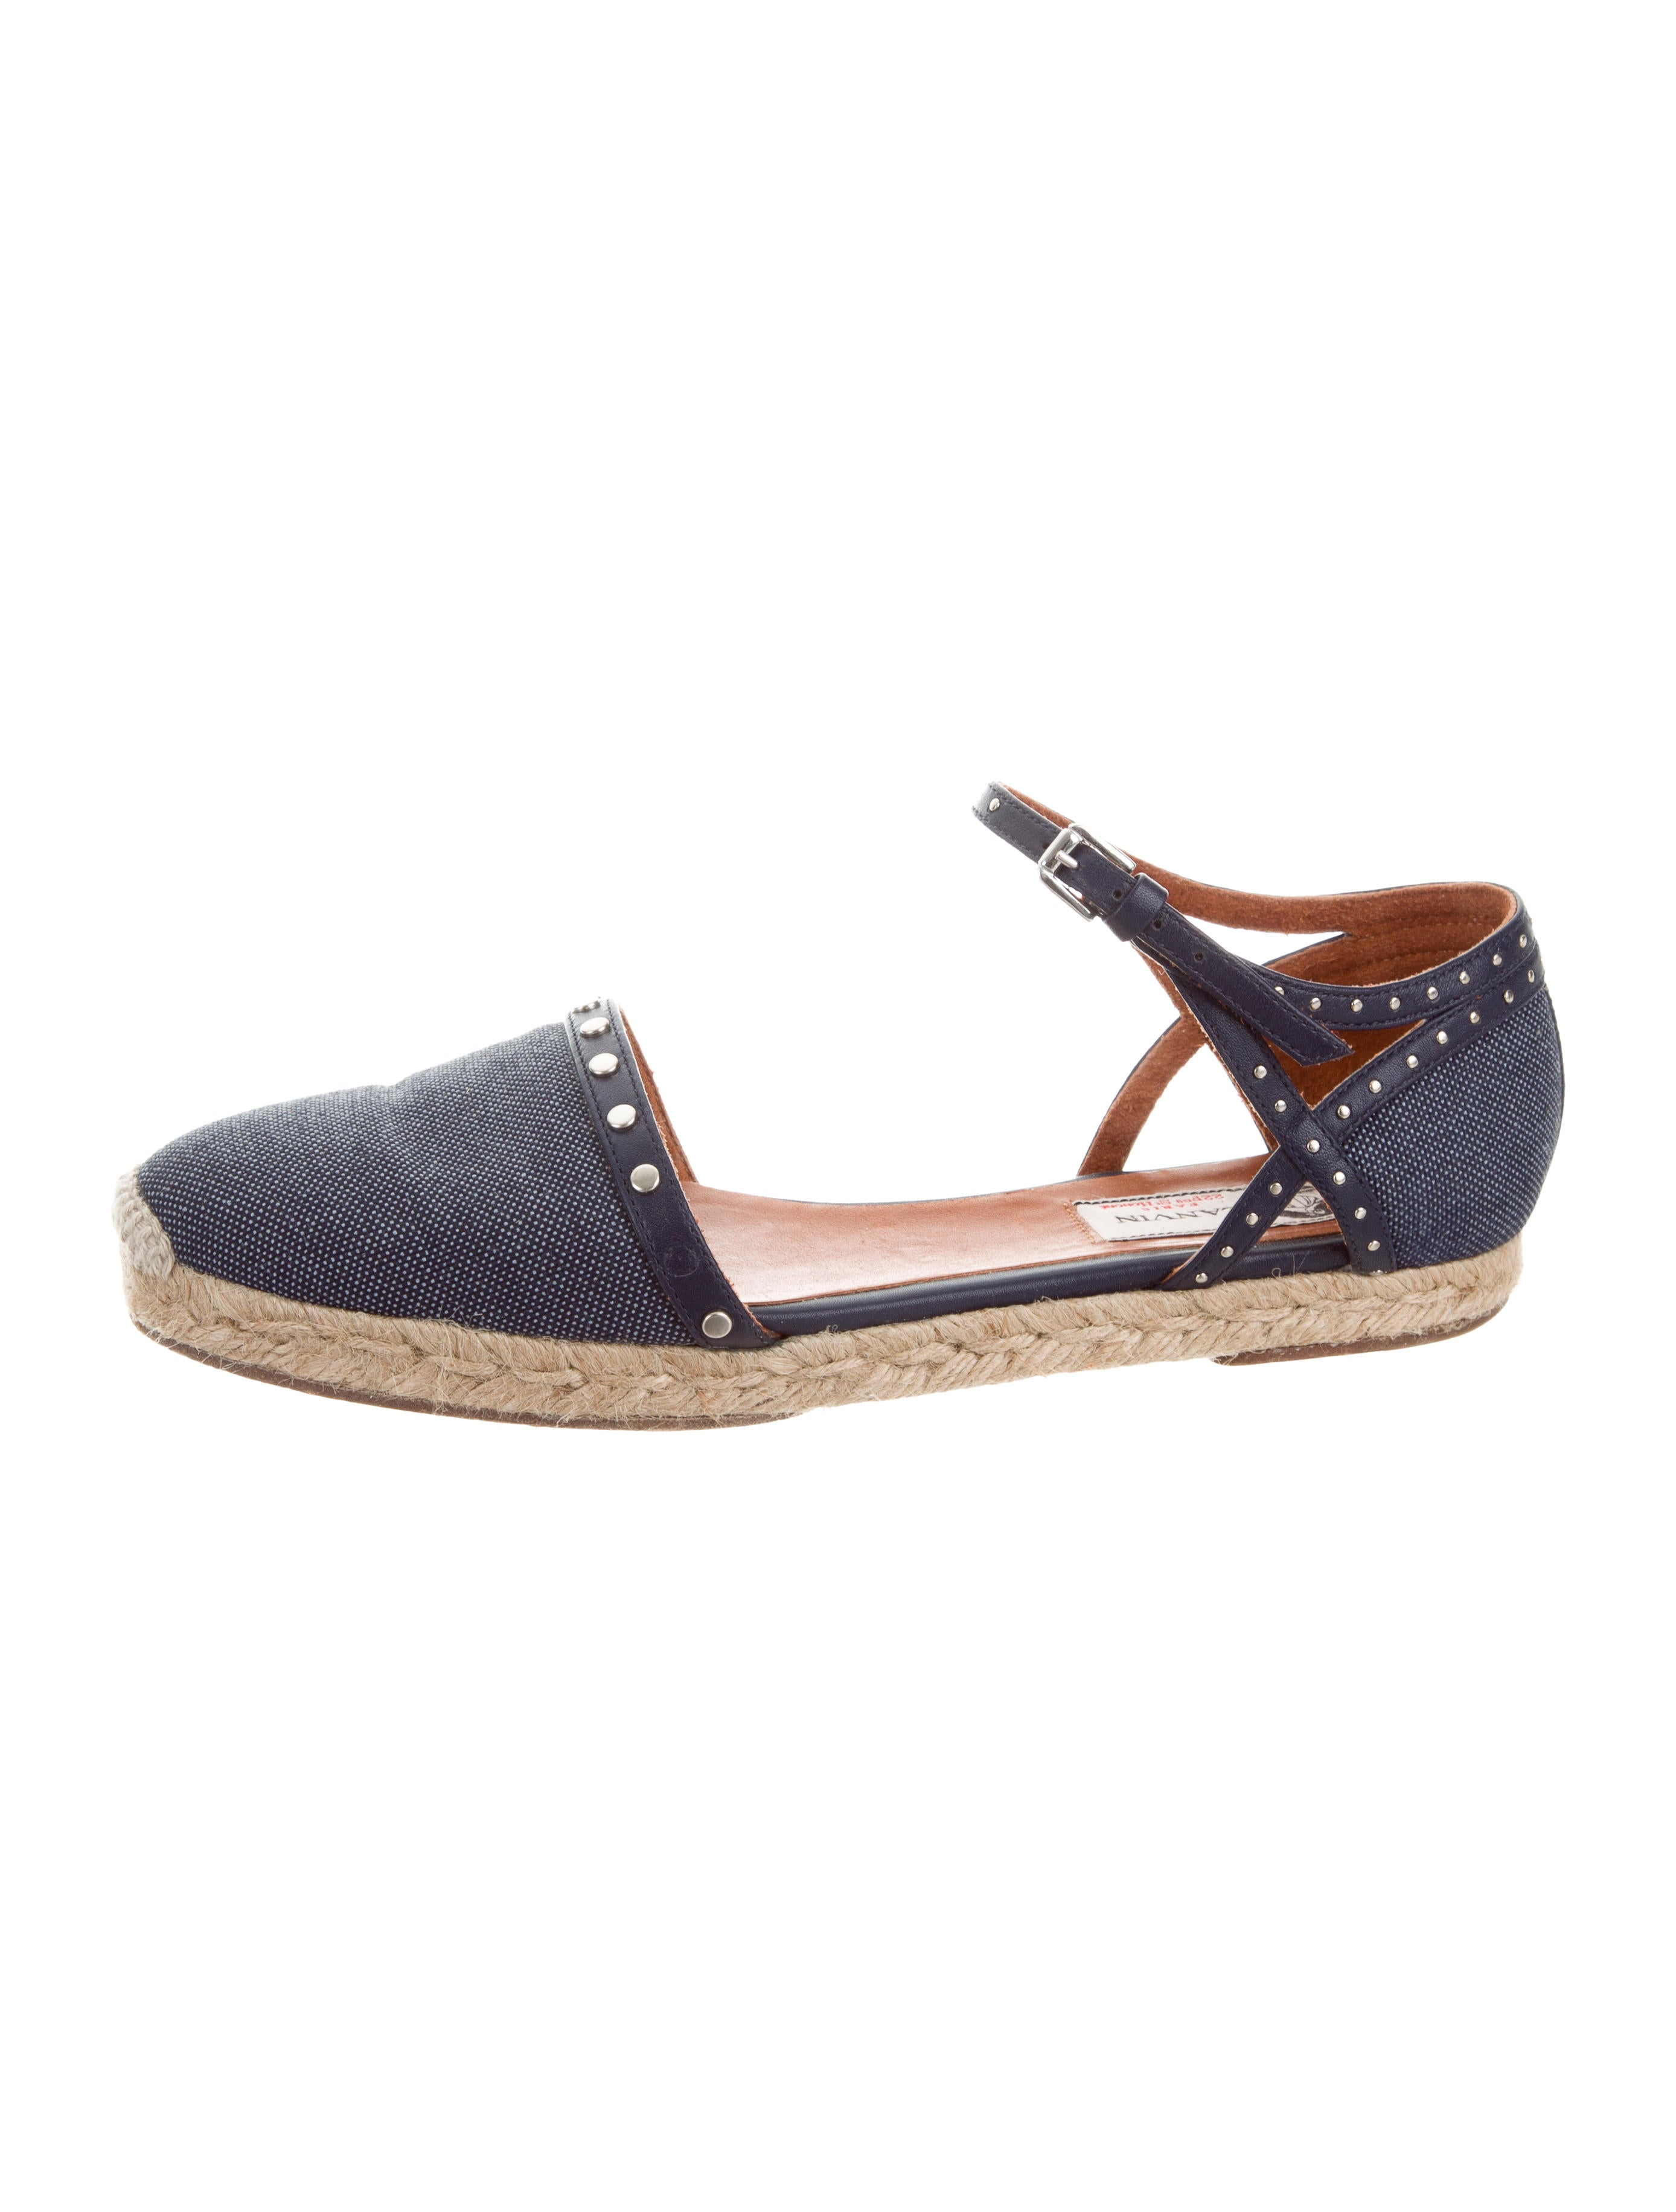 prices cheap online hot sale cheap online Lanvin Leather-Trimmed d'Orsay Espadrilles outlet where to buy 2GrEeD